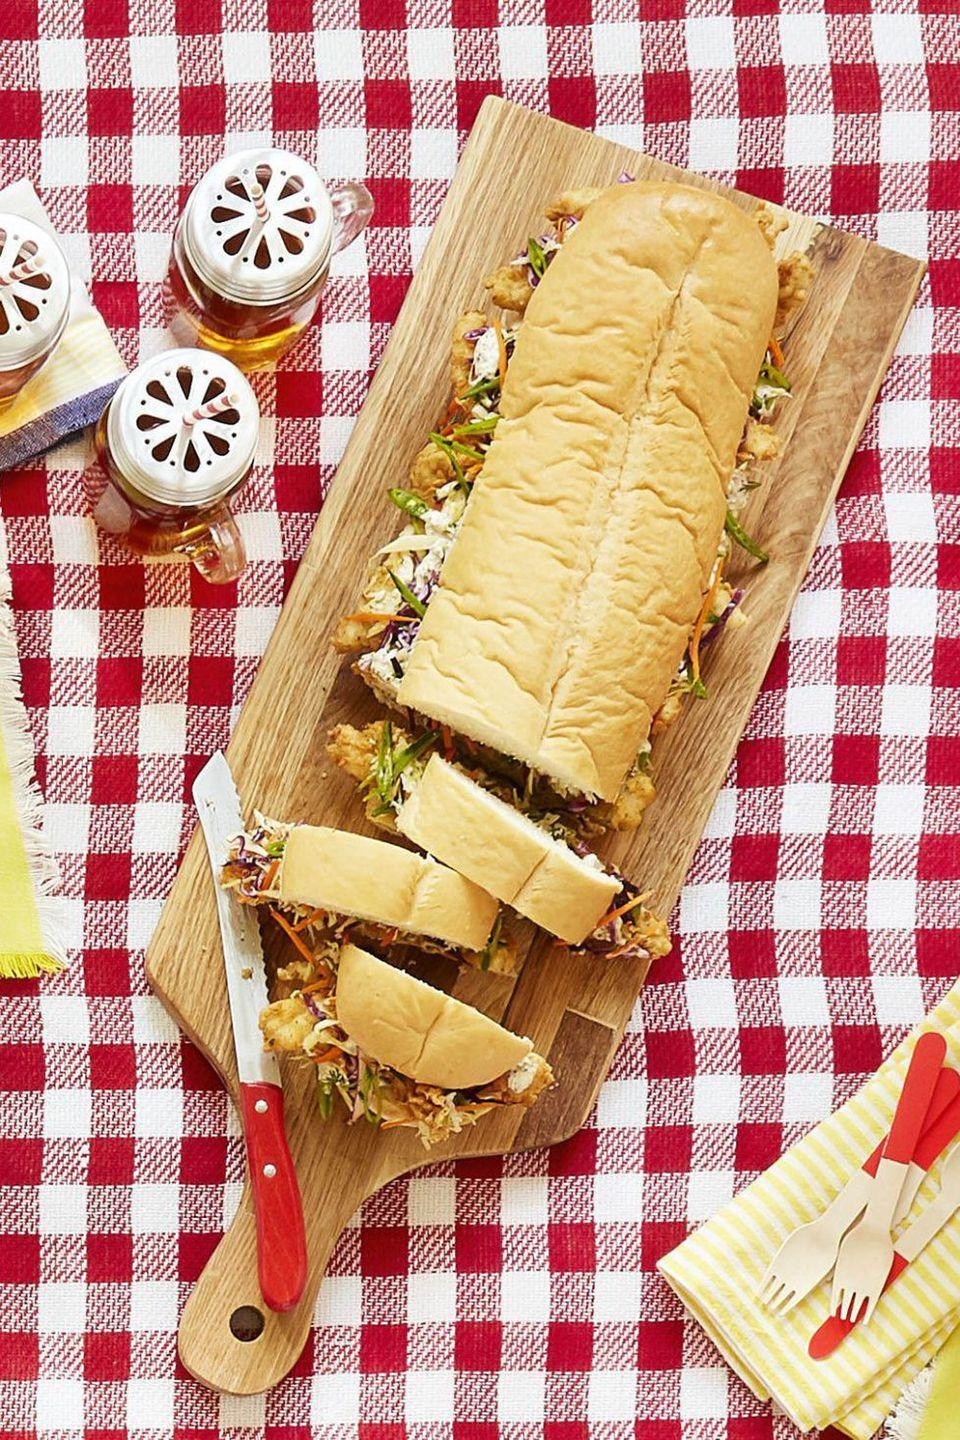 """<p>A big sub sandwich will feed plenty of people at your Memorial Day party.</p><p><strong><a href=""""https://www.countryliving.com/food-drinks/recipes/a42427/chicken-finger-sub-cabbage-slaw-recipe/"""" rel=""""nofollow noopener"""" target=""""_blank"""" data-ylk=""""slk:Get the recipe"""" class=""""link rapid-noclick-resp"""">Get the recipe</a>.</strong></p><p> <a class=""""link rapid-noclick-resp"""" href=""""https://www.amazon.com/JAMIE-OLIVER-Acacia-Cutting-Board/dp/B01D6KCNU0?tag=syn-yahoo-20&ascsubtag=%5Bartid%7C10050.g.3290%5Bsrc%7Cyahoo-us"""" rel=""""nofollow noopener"""" target=""""_blank"""" data-ylk=""""slk:SHOP CUTTING BOARDS"""">SHOP CUTTING BOARDS</a></p>"""